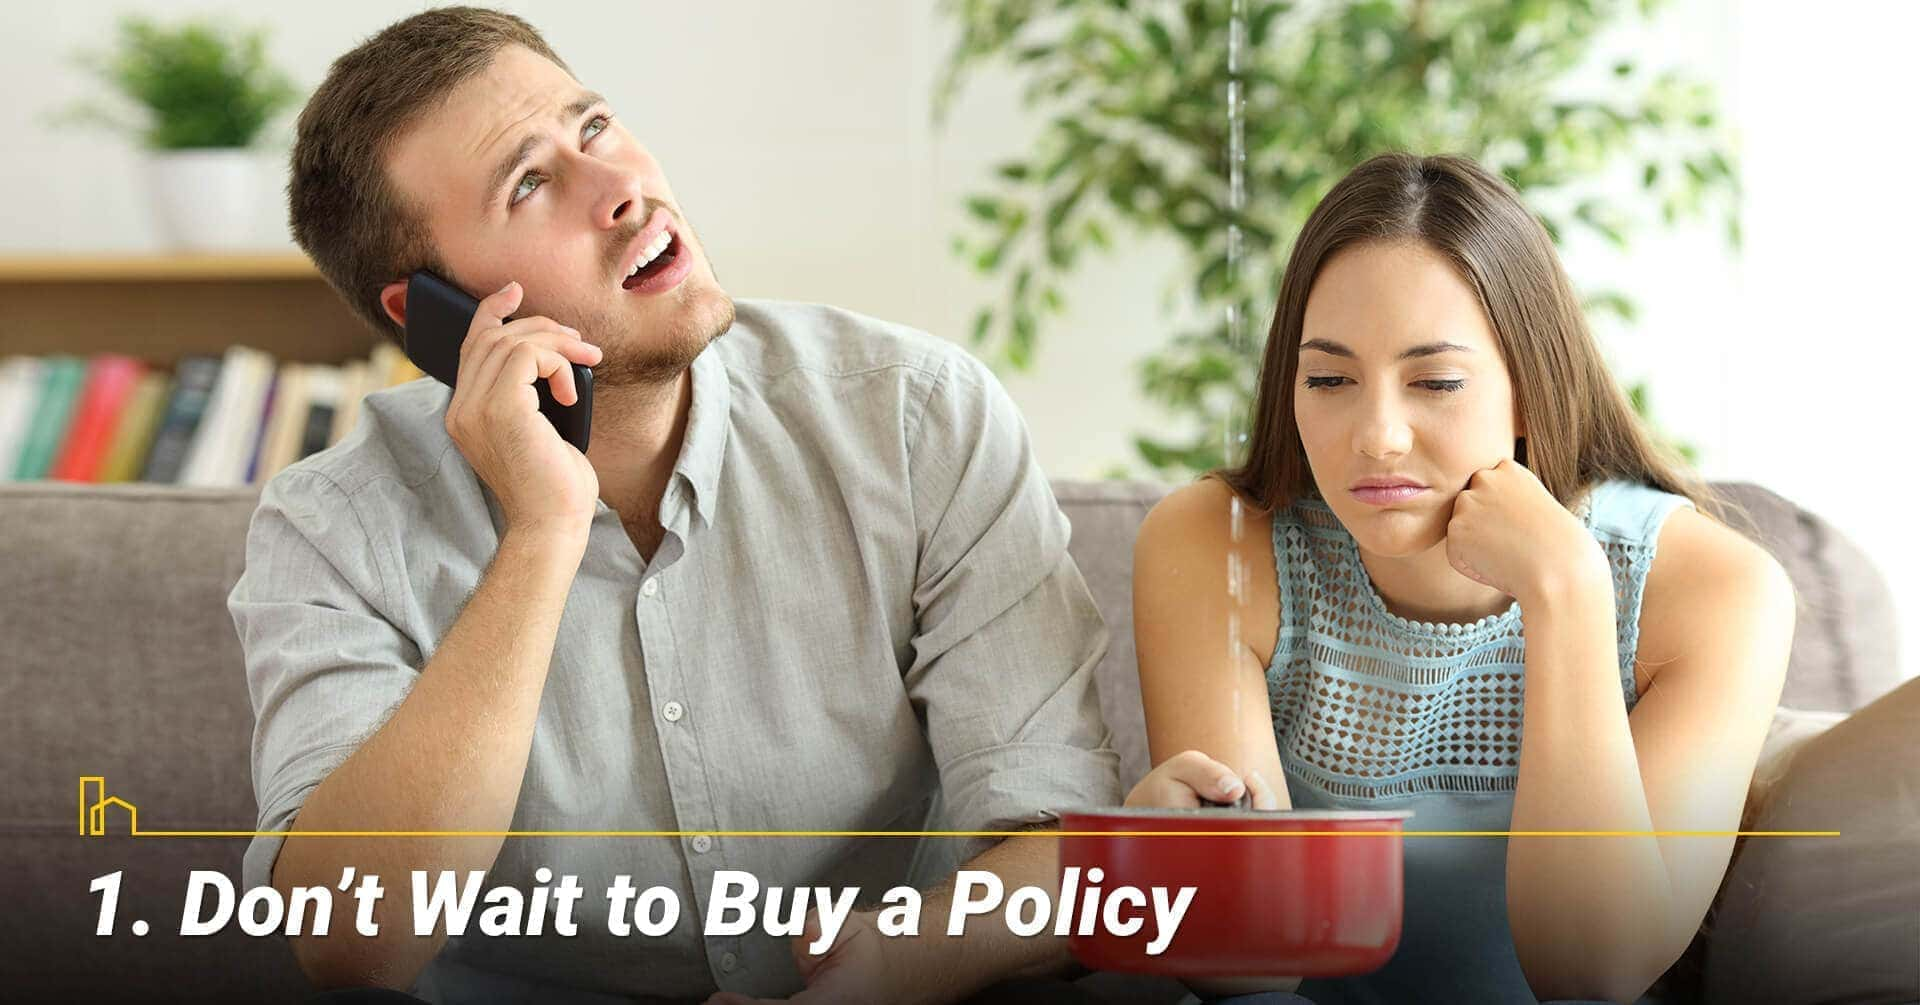 Don't Wait to Buy a Policy